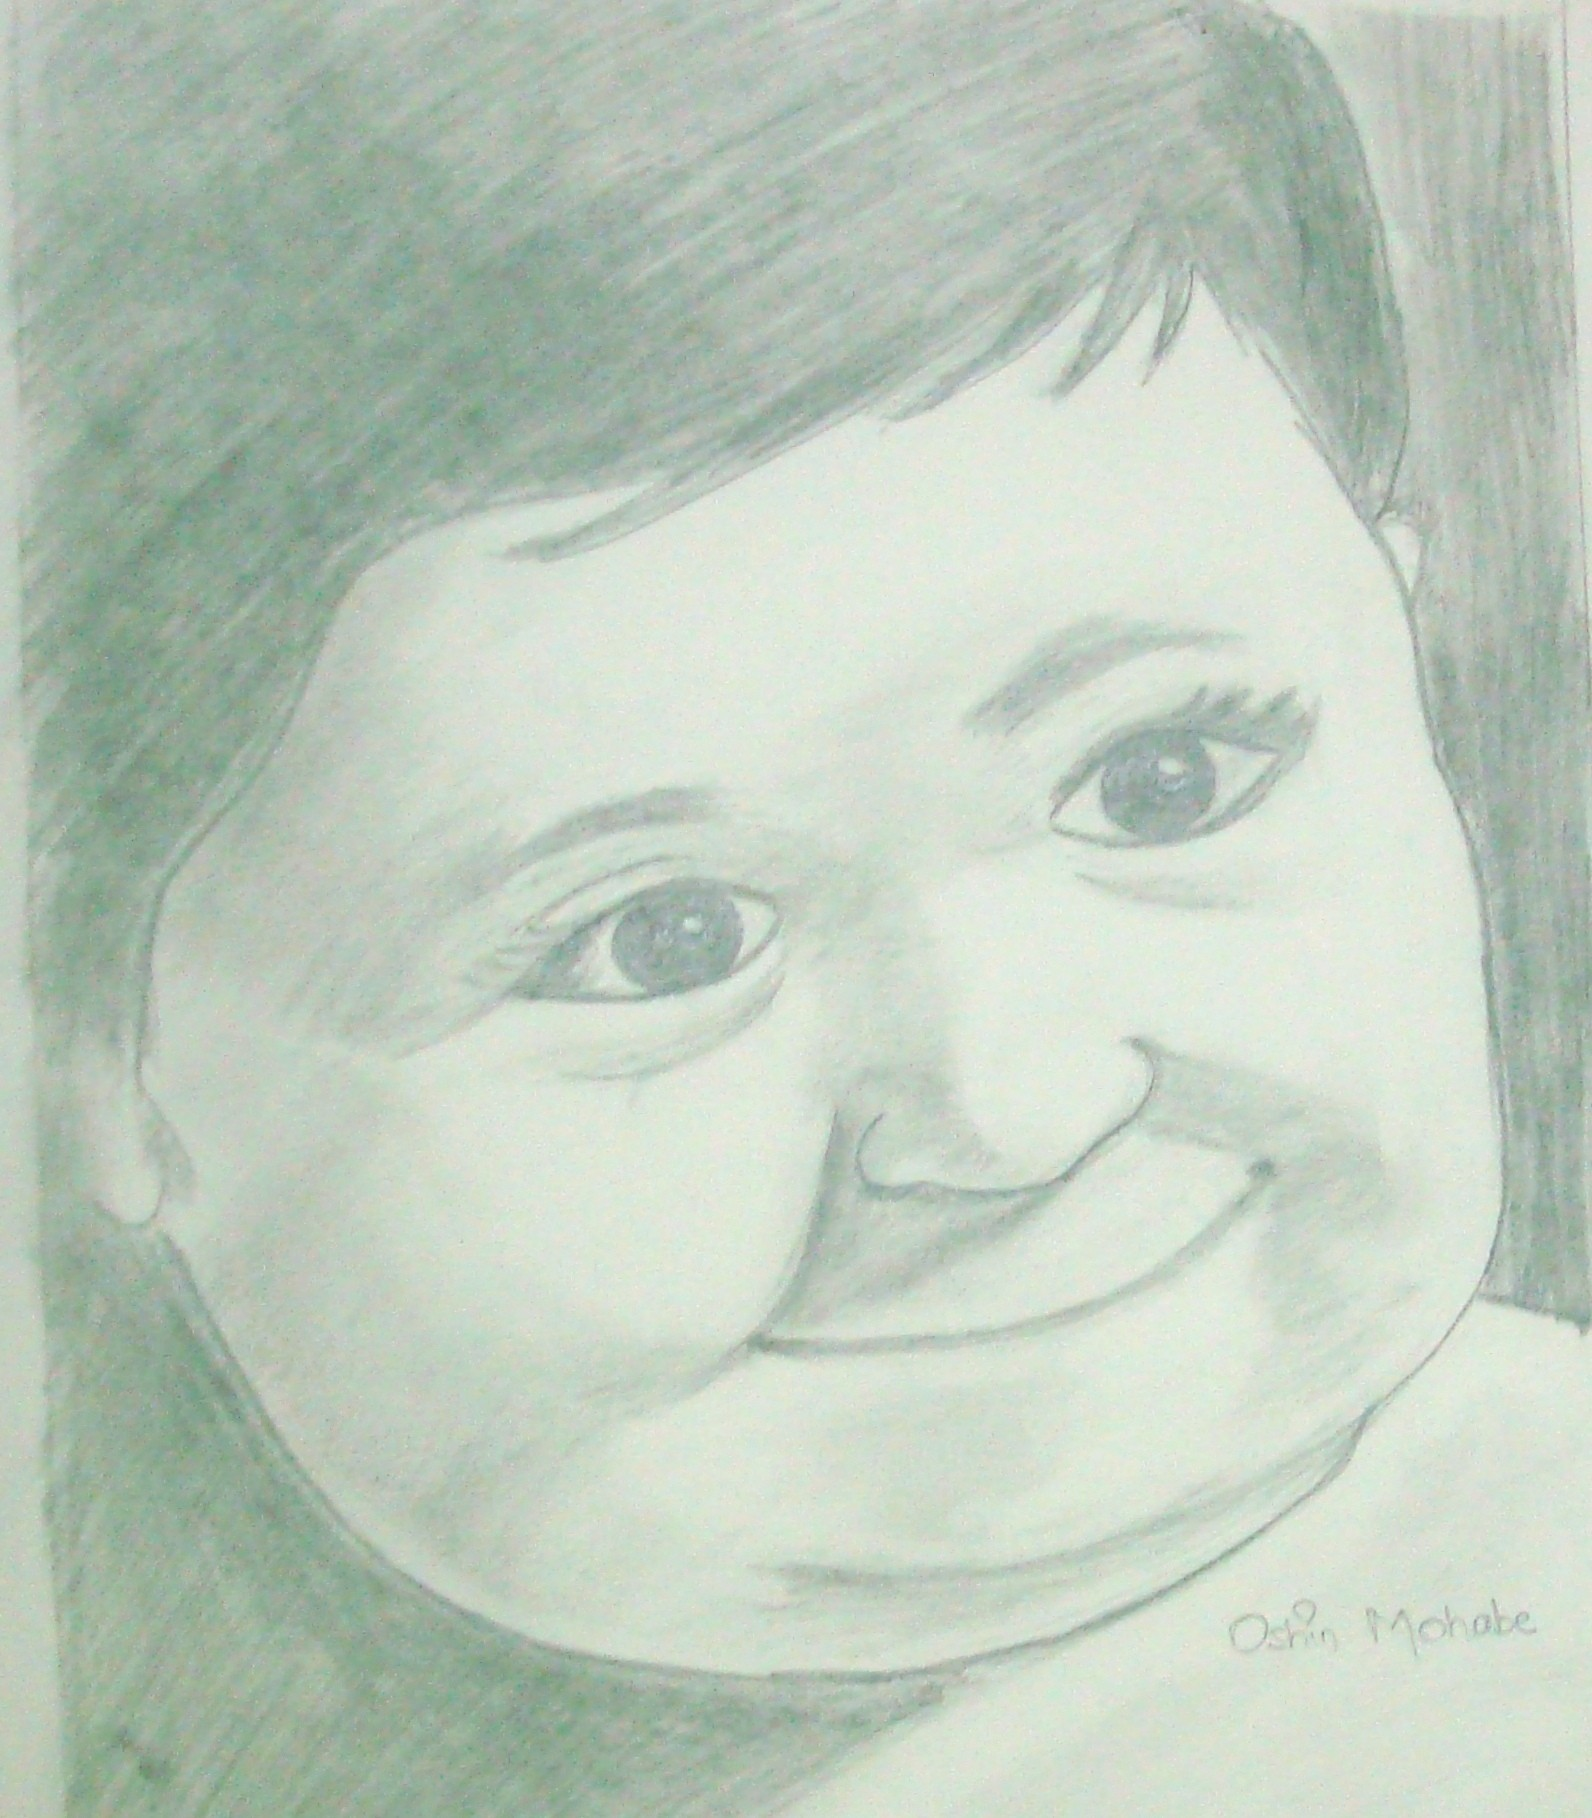 1592x1818 Pencil Sketch Of A Smiling Baby